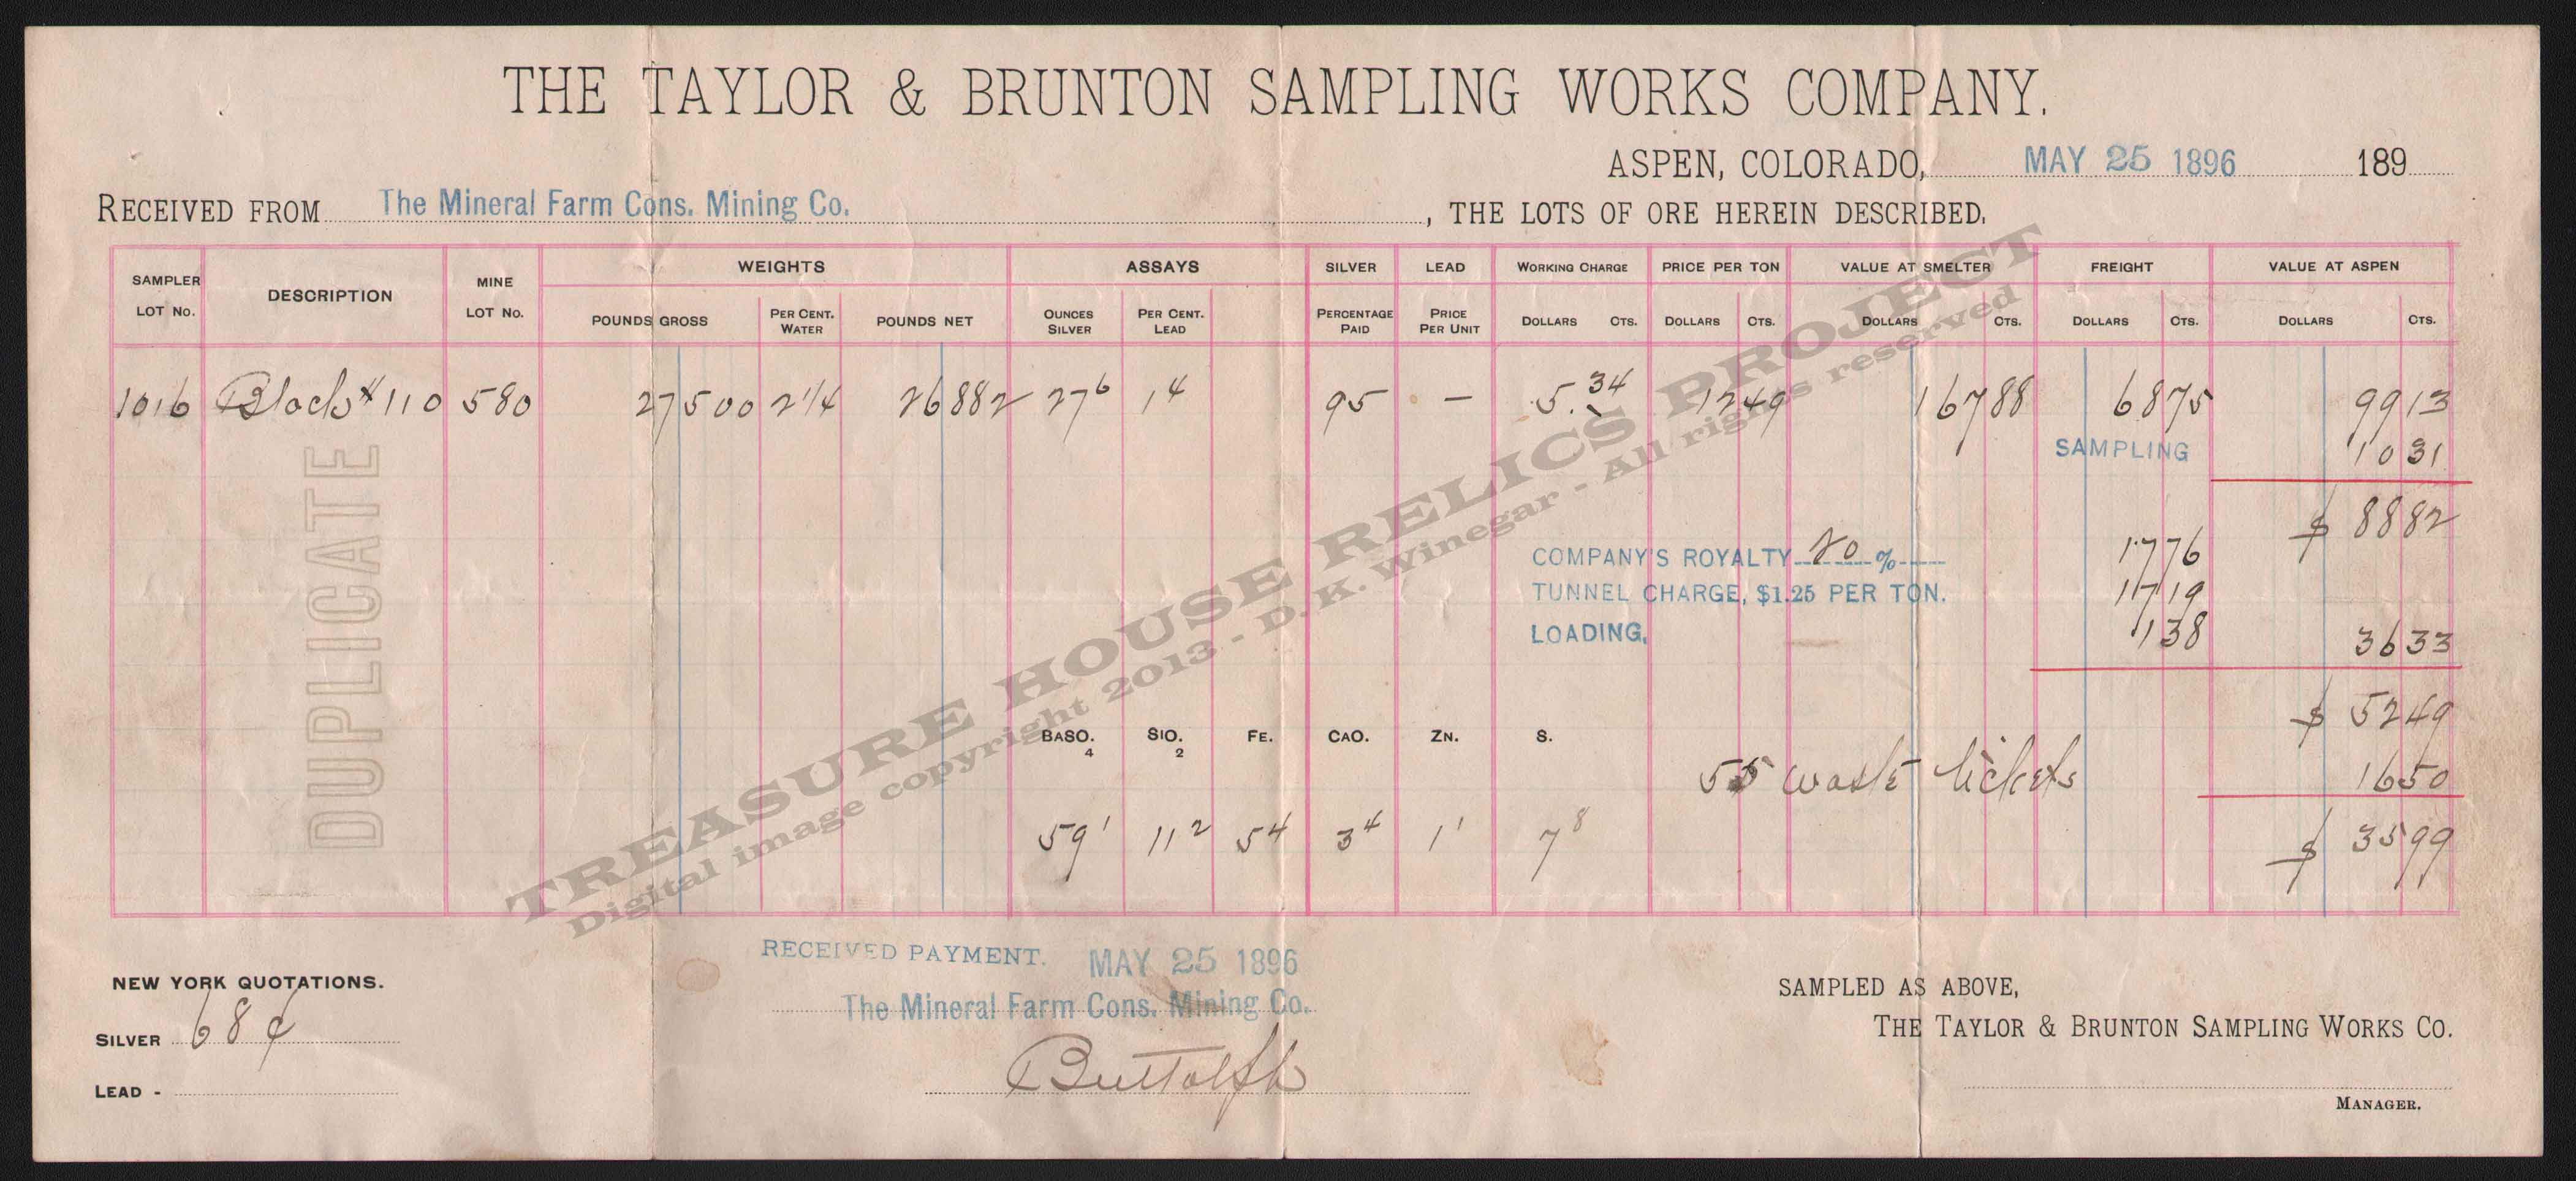 LETTERHEAD/ASSAY_TAYLOR_BRUNTON_ASPEN_COLORADO_1896_5_25_300_CROP_EMBOSS.jpg